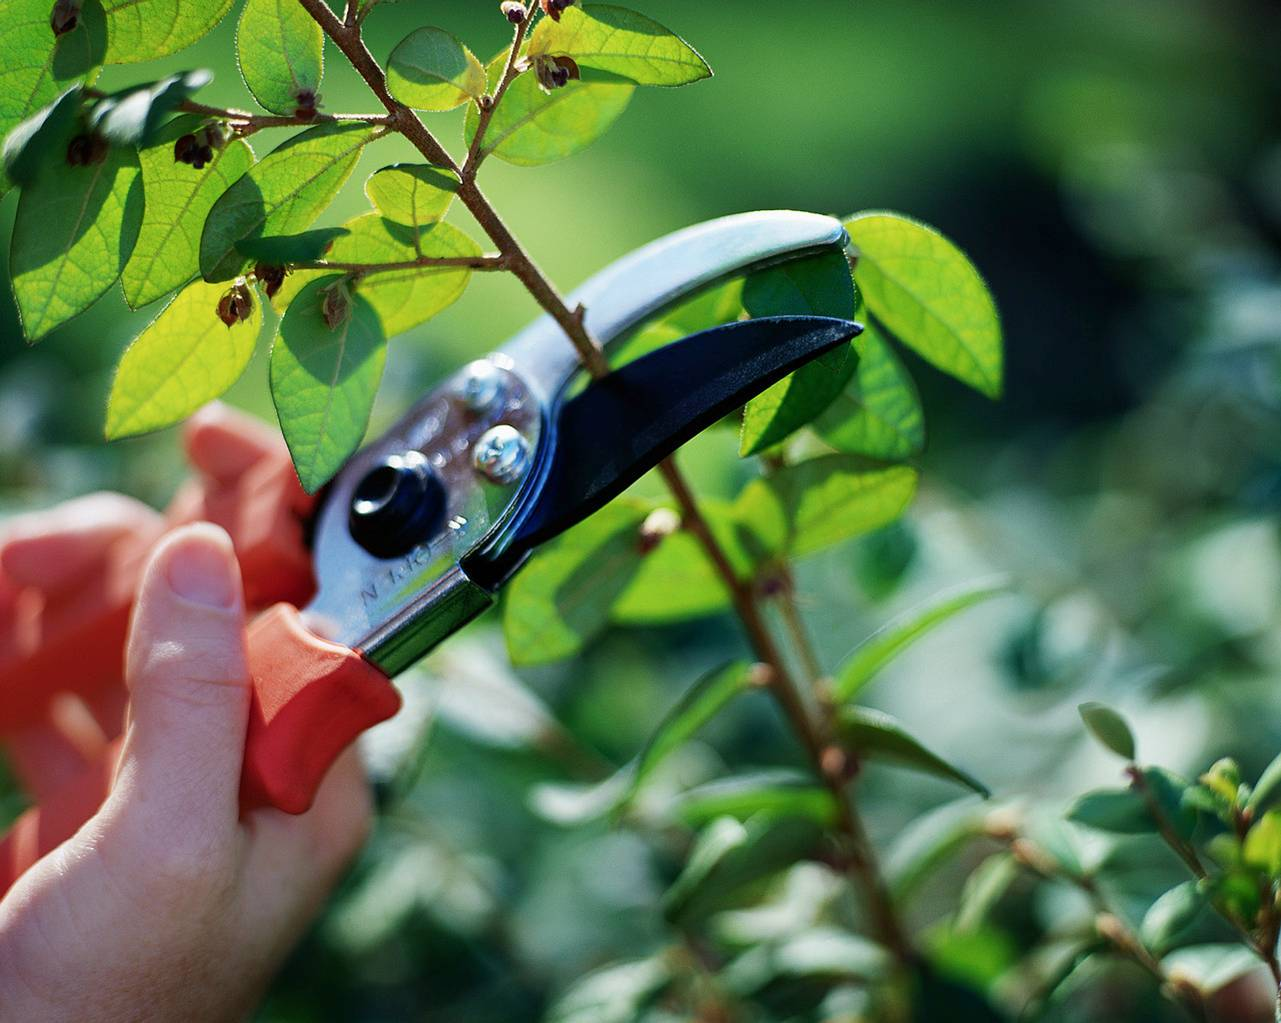 WHERE, WHEN AND HOW TO PRUNE? - It's really not that difficult or stressful!